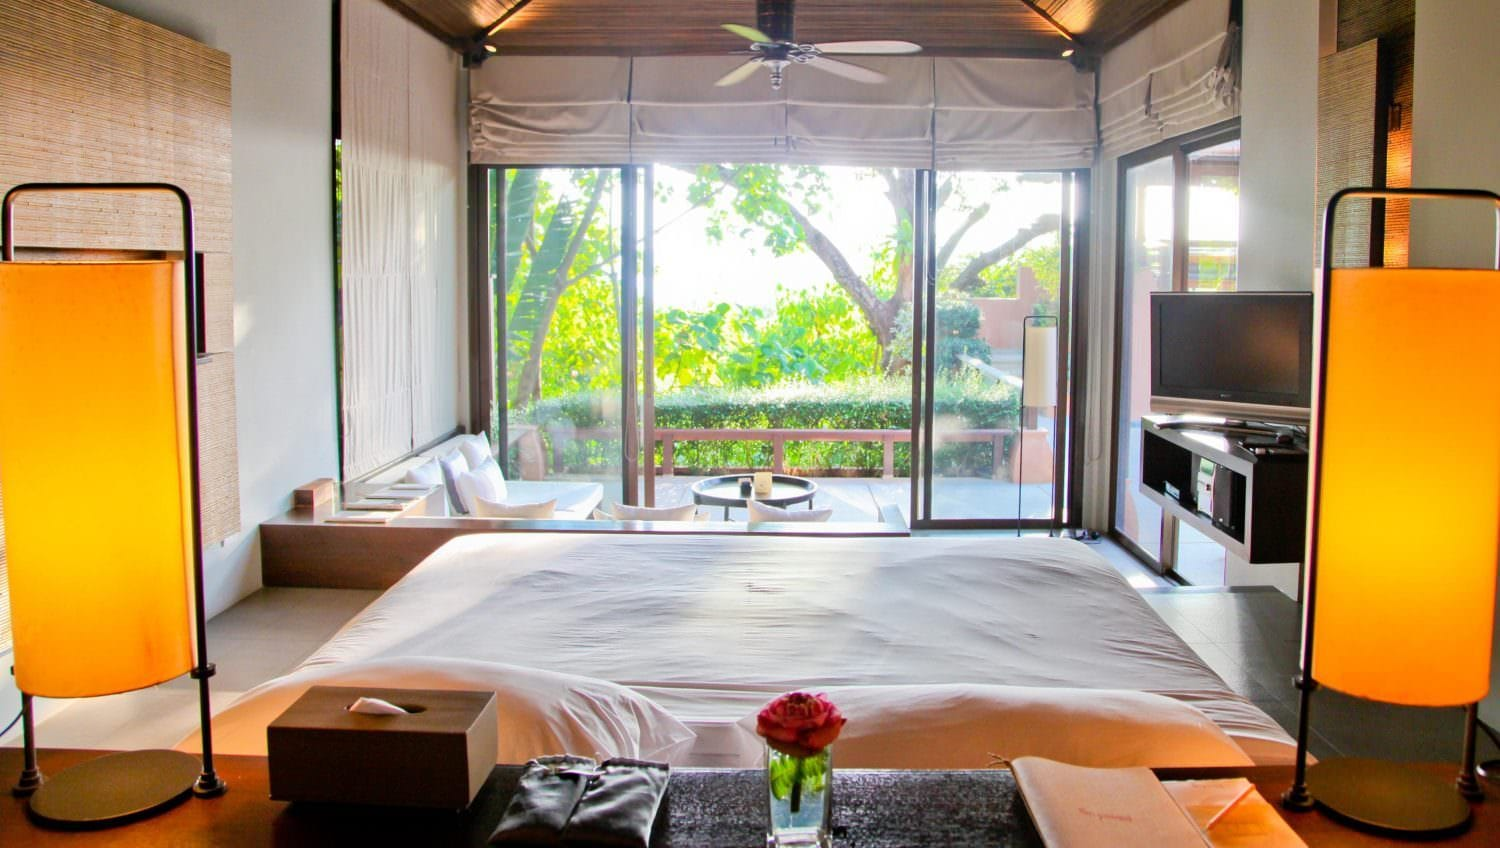 2-Two-Bedroom-Family-Suite-Garden-View-Sri-Panwa-Luxury-Pool-Villa-Hotel-Phuket-Resort-Spa